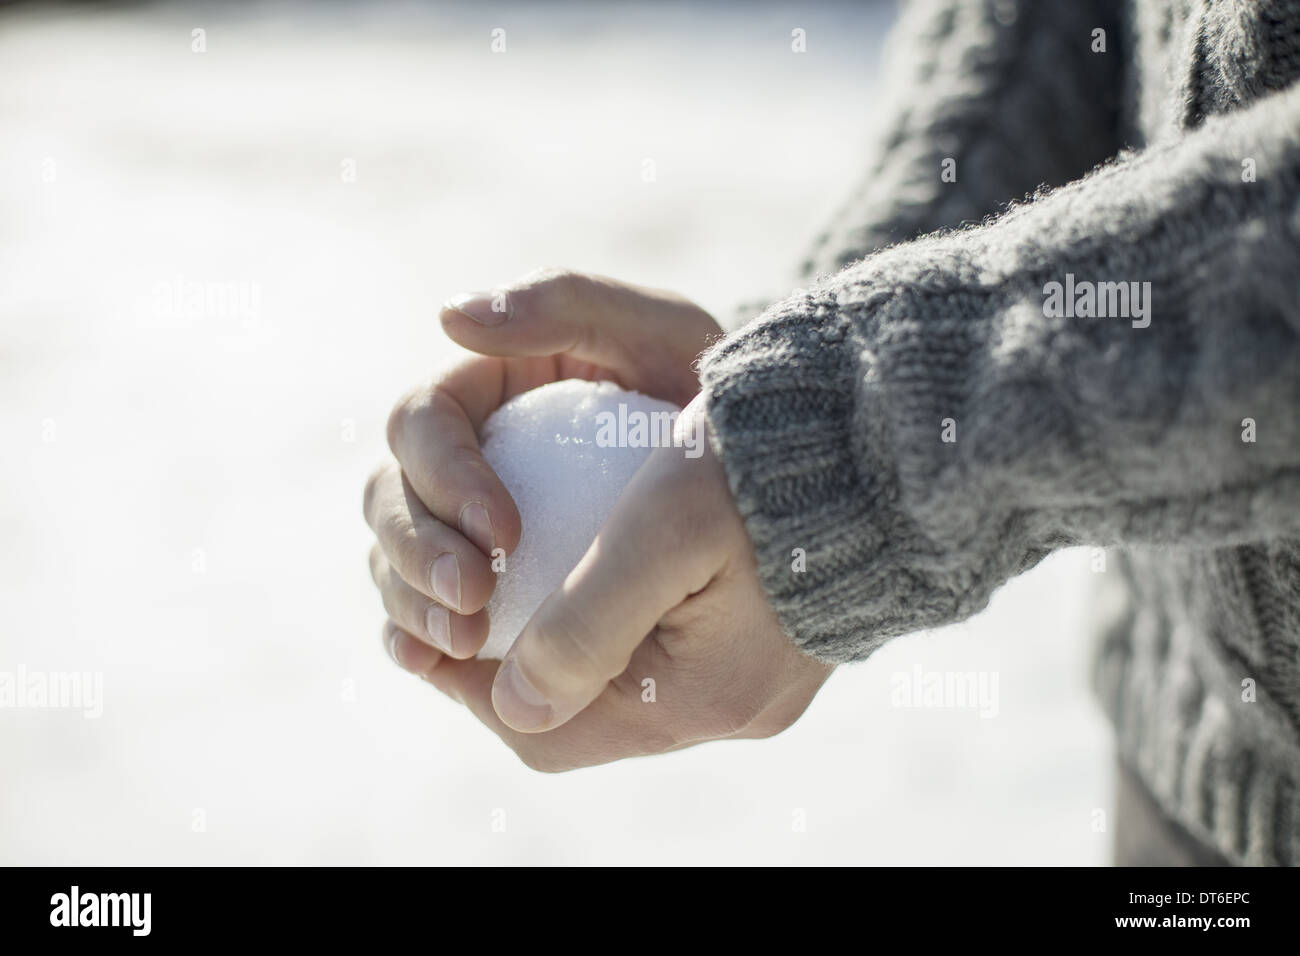 A man holding a large snowball in his bare hands. - Stock Image